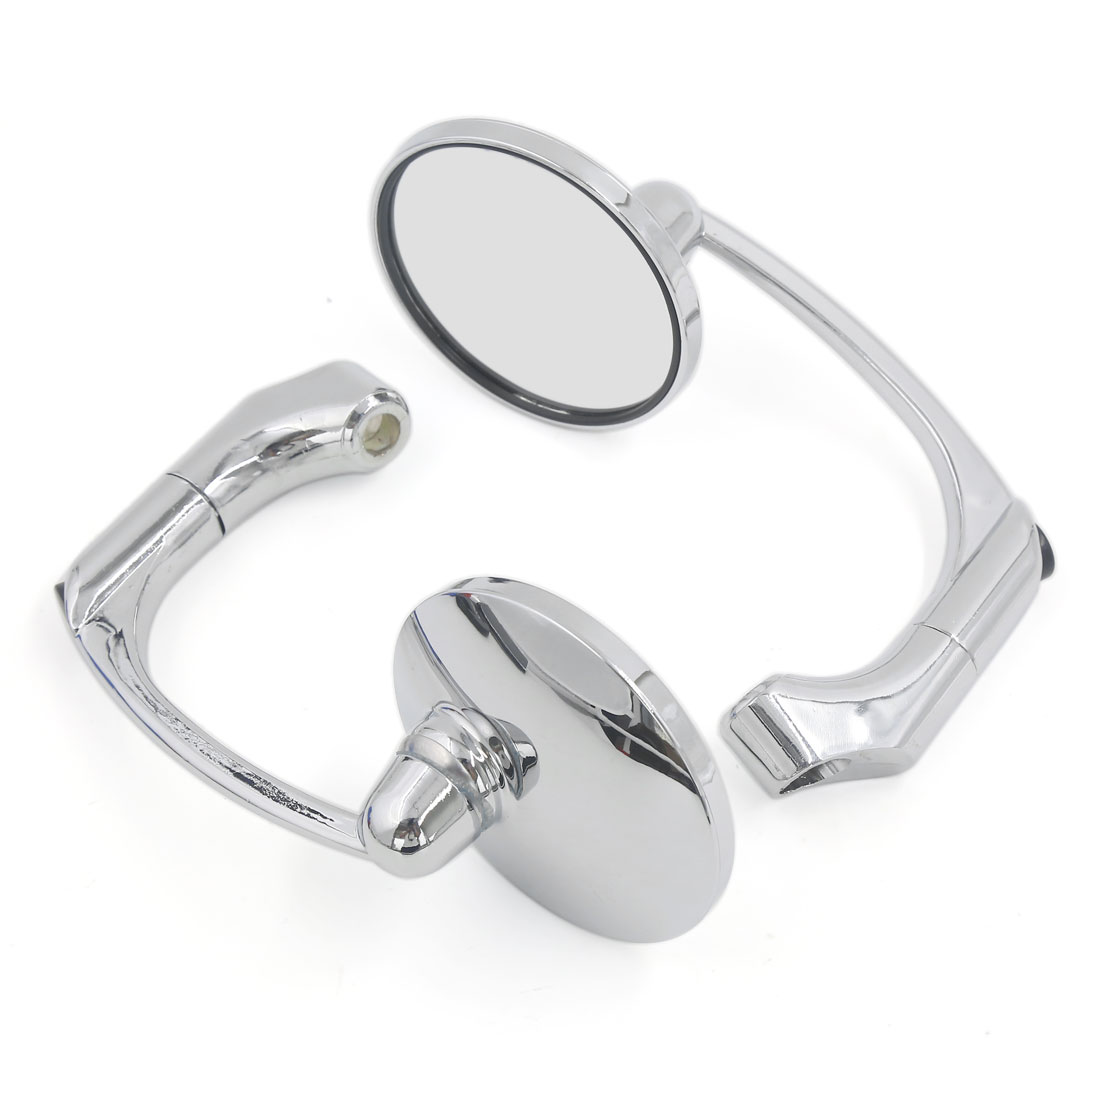 "Chrome Aluminum Stem 3"" Dia Round Rear View Mirrors Side Mirror for Motorcycle"